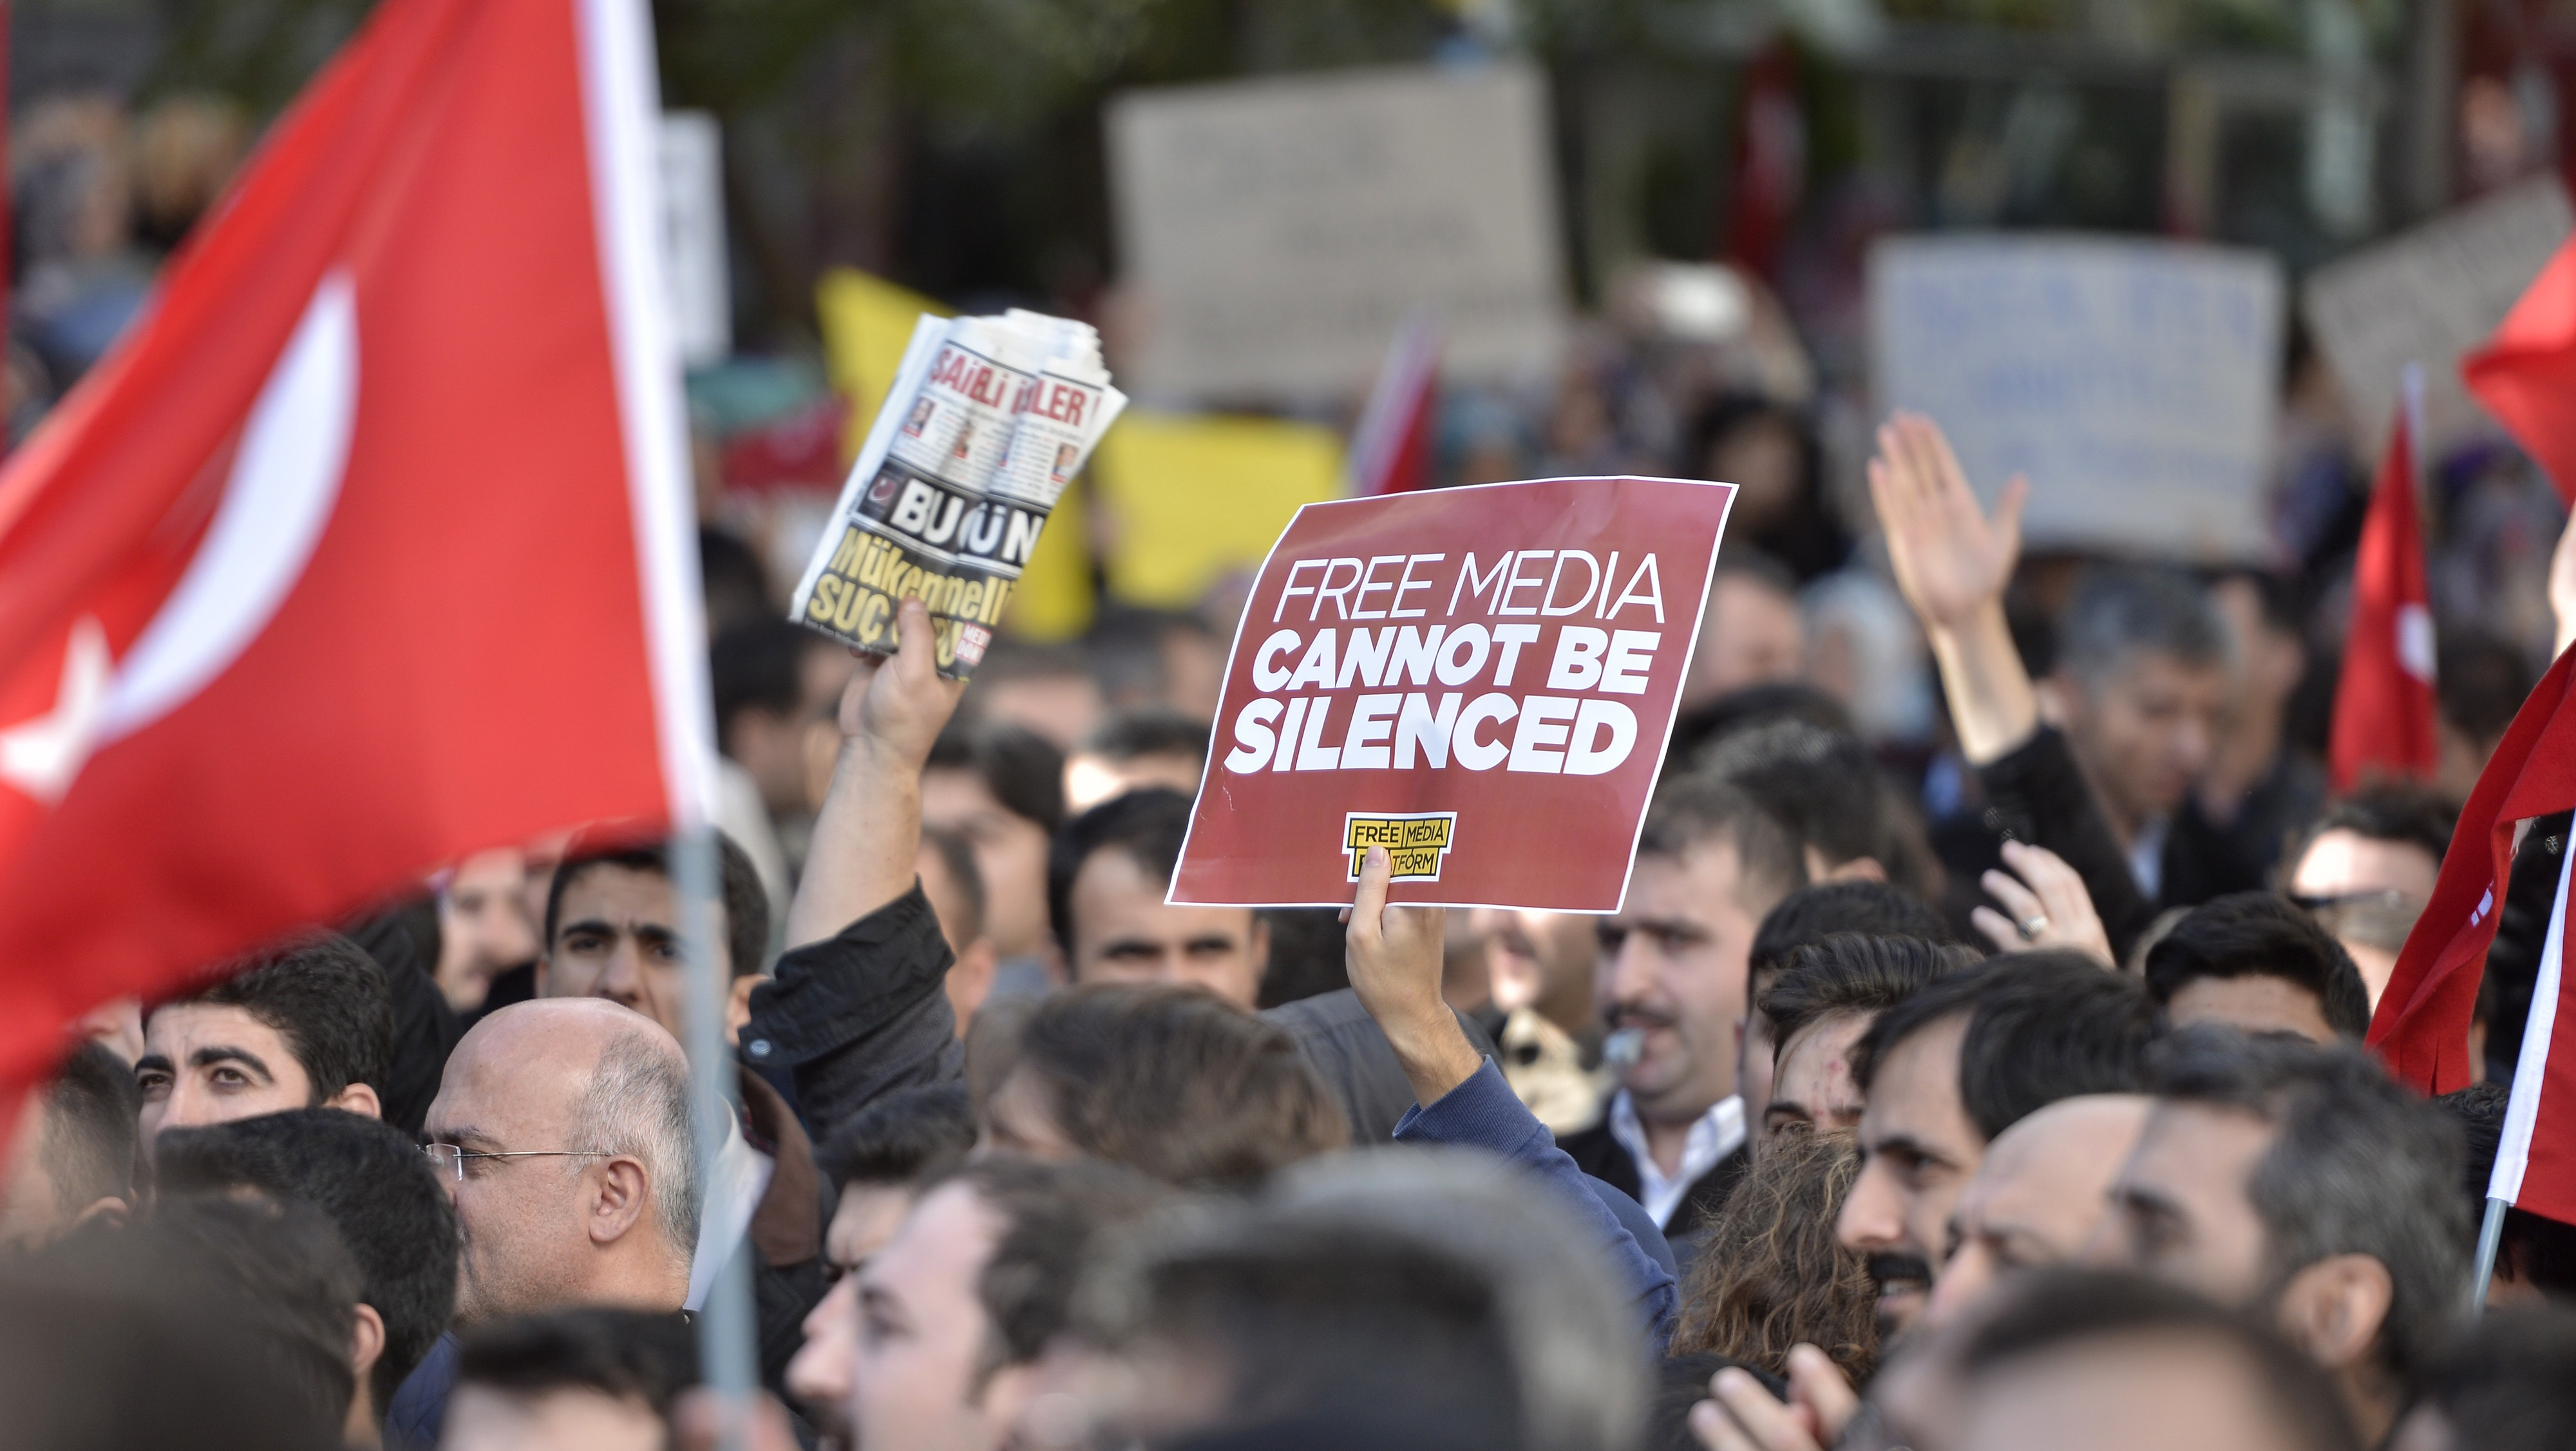 #FreeRasool: International News Editors Express Concern Over Turkish 'Climate of Intimidation'